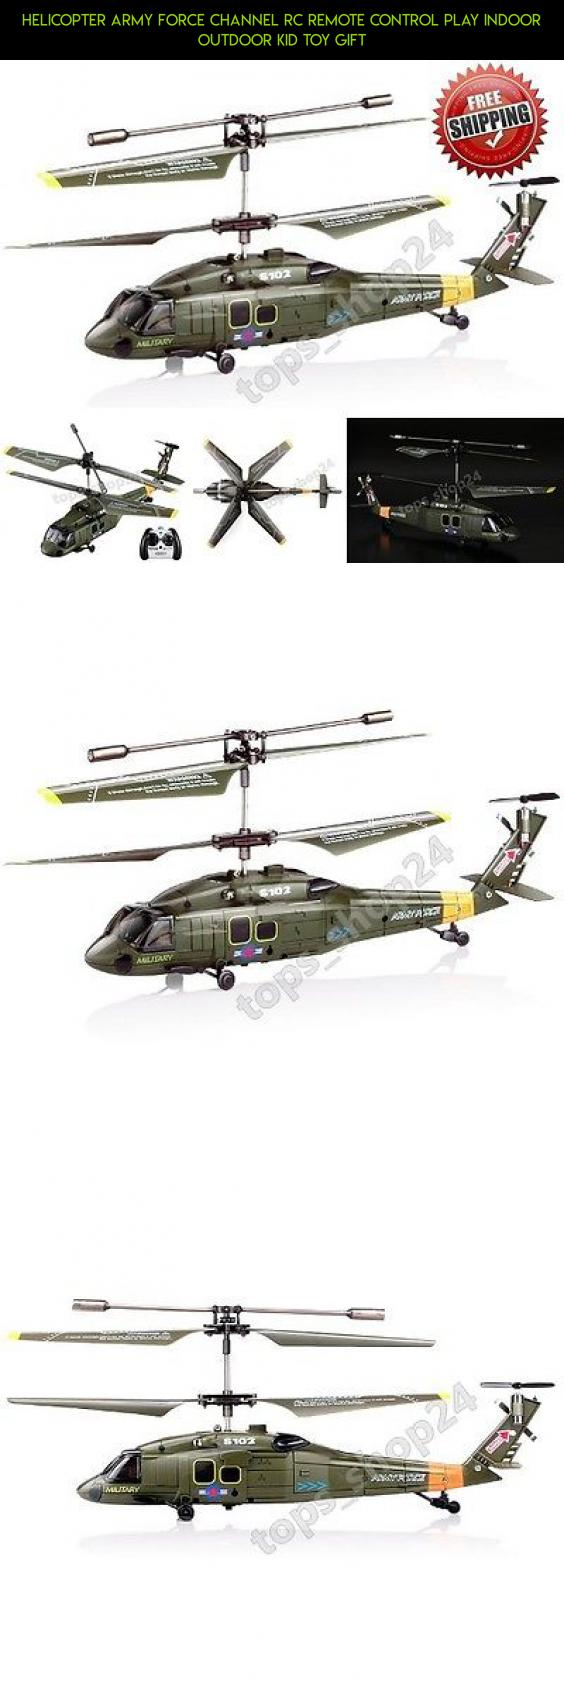 Helicopter Army Force Channel RC Remote Control Play Indoor Outdoor